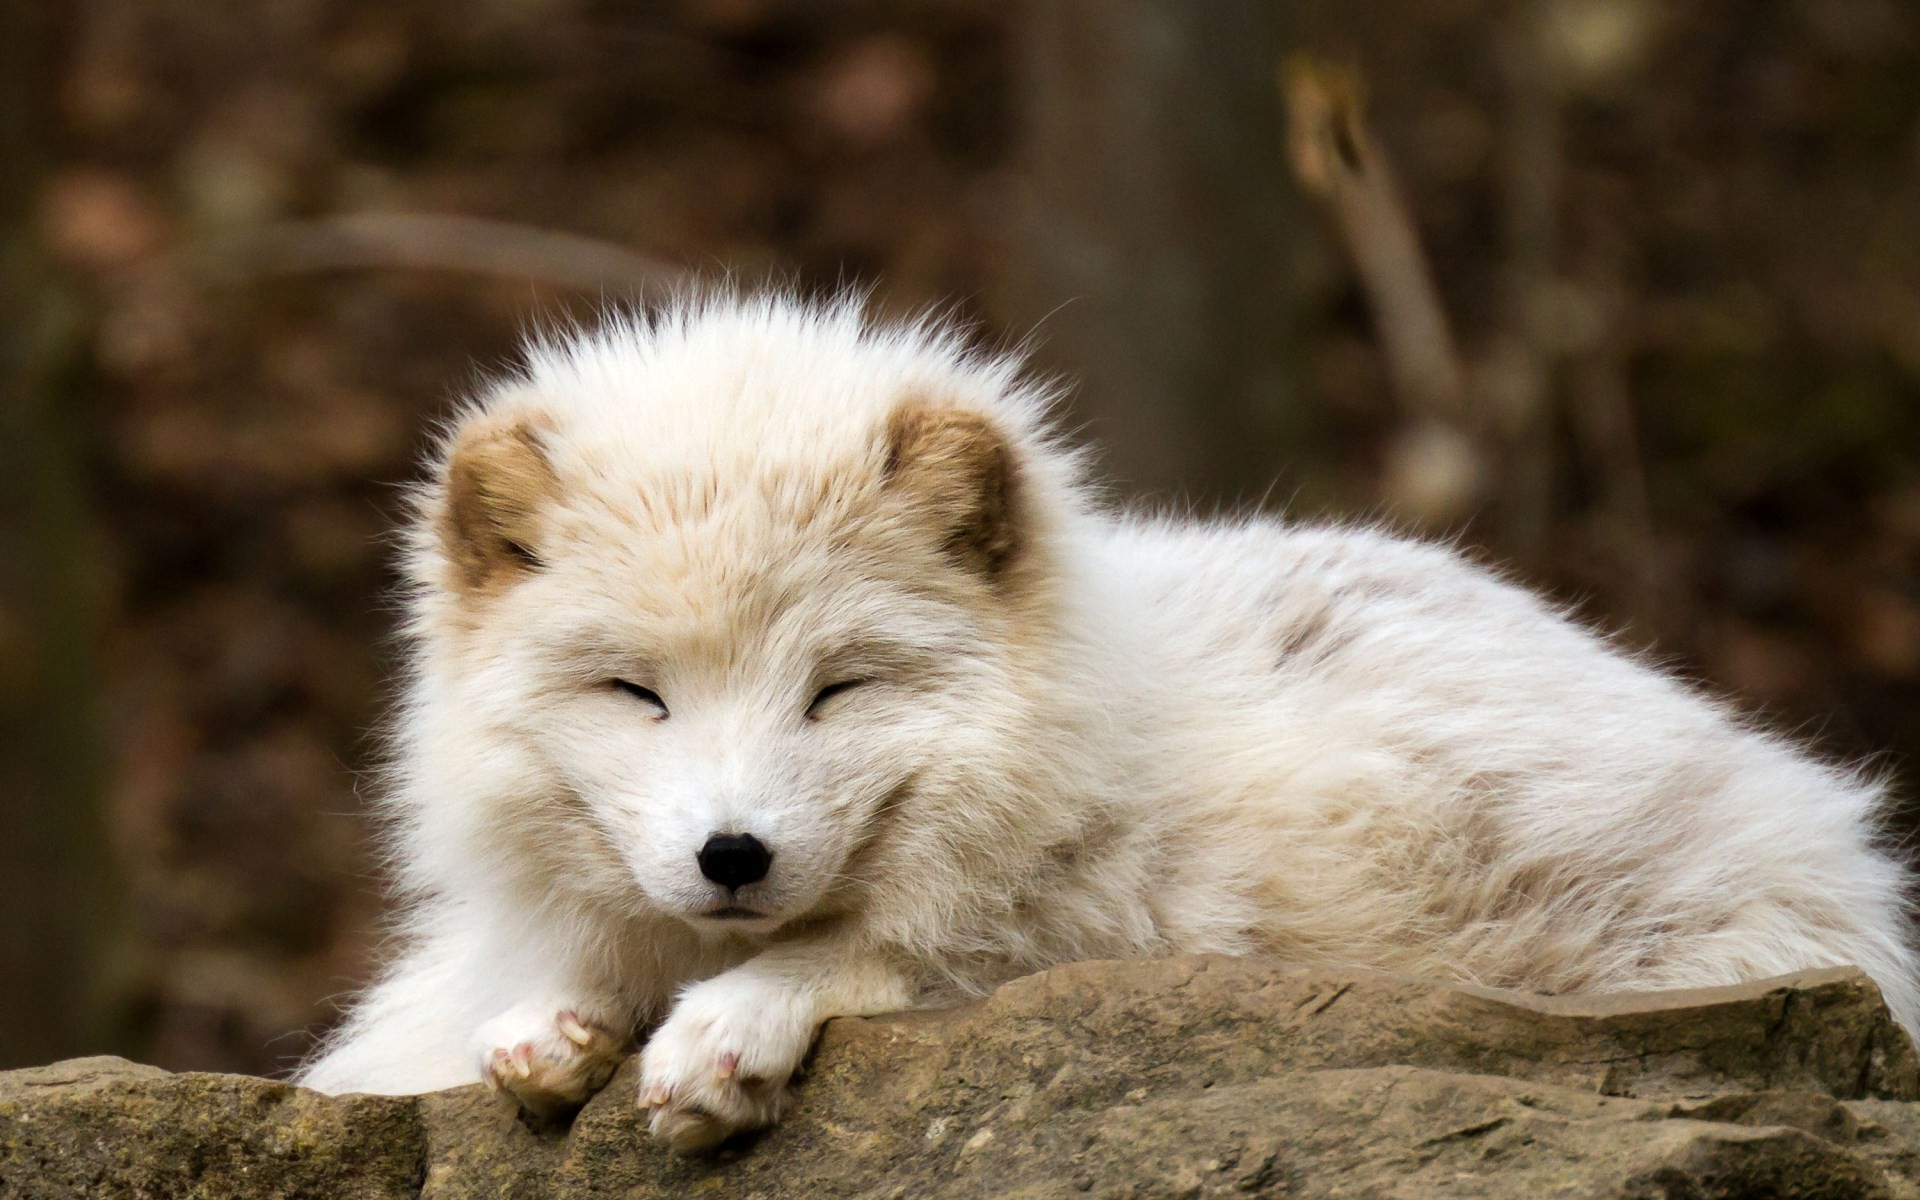 Cute baby fox wallpaper 54 images - Cute baby animal desktop backgrounds ...